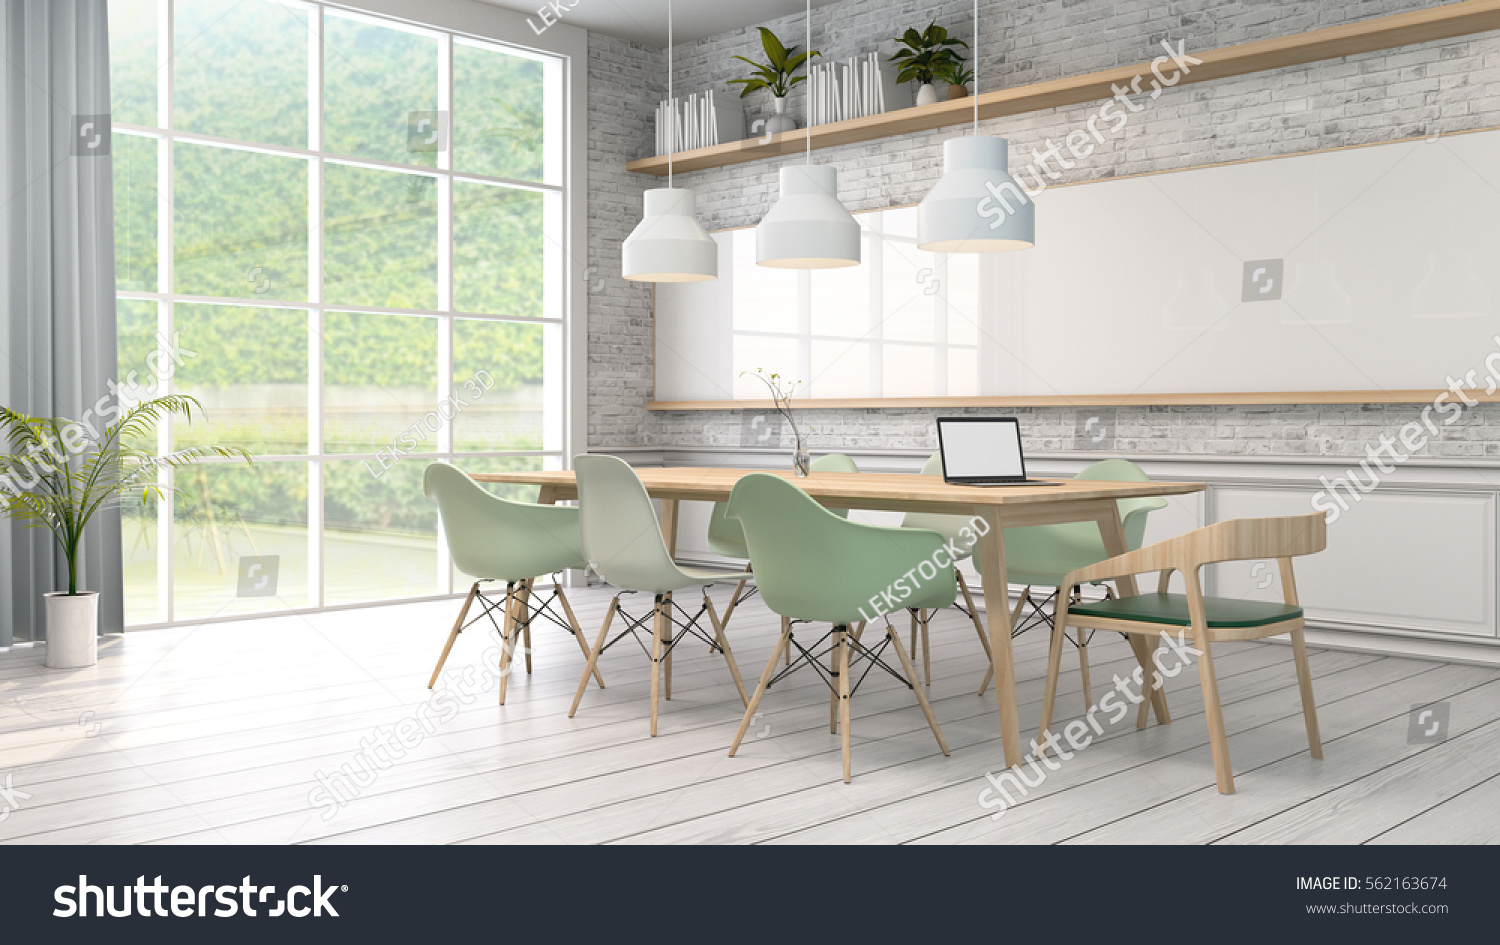 Minimalist Interior Meeting Room White With Green Chair And Wood Tablegreen